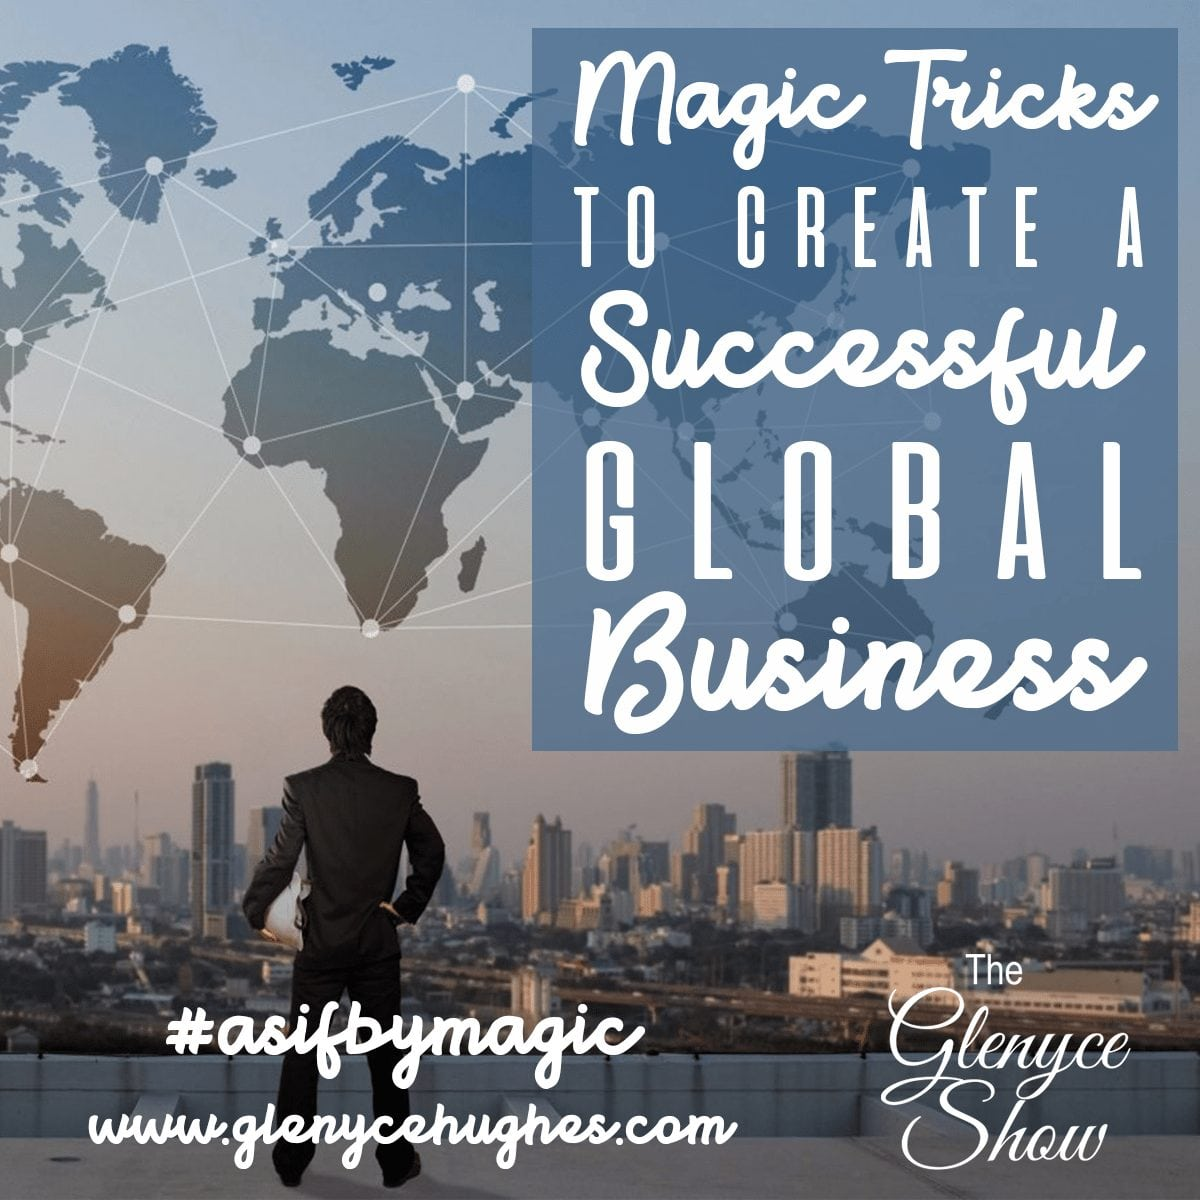 Magic Tricks to Create a Successful Global Business